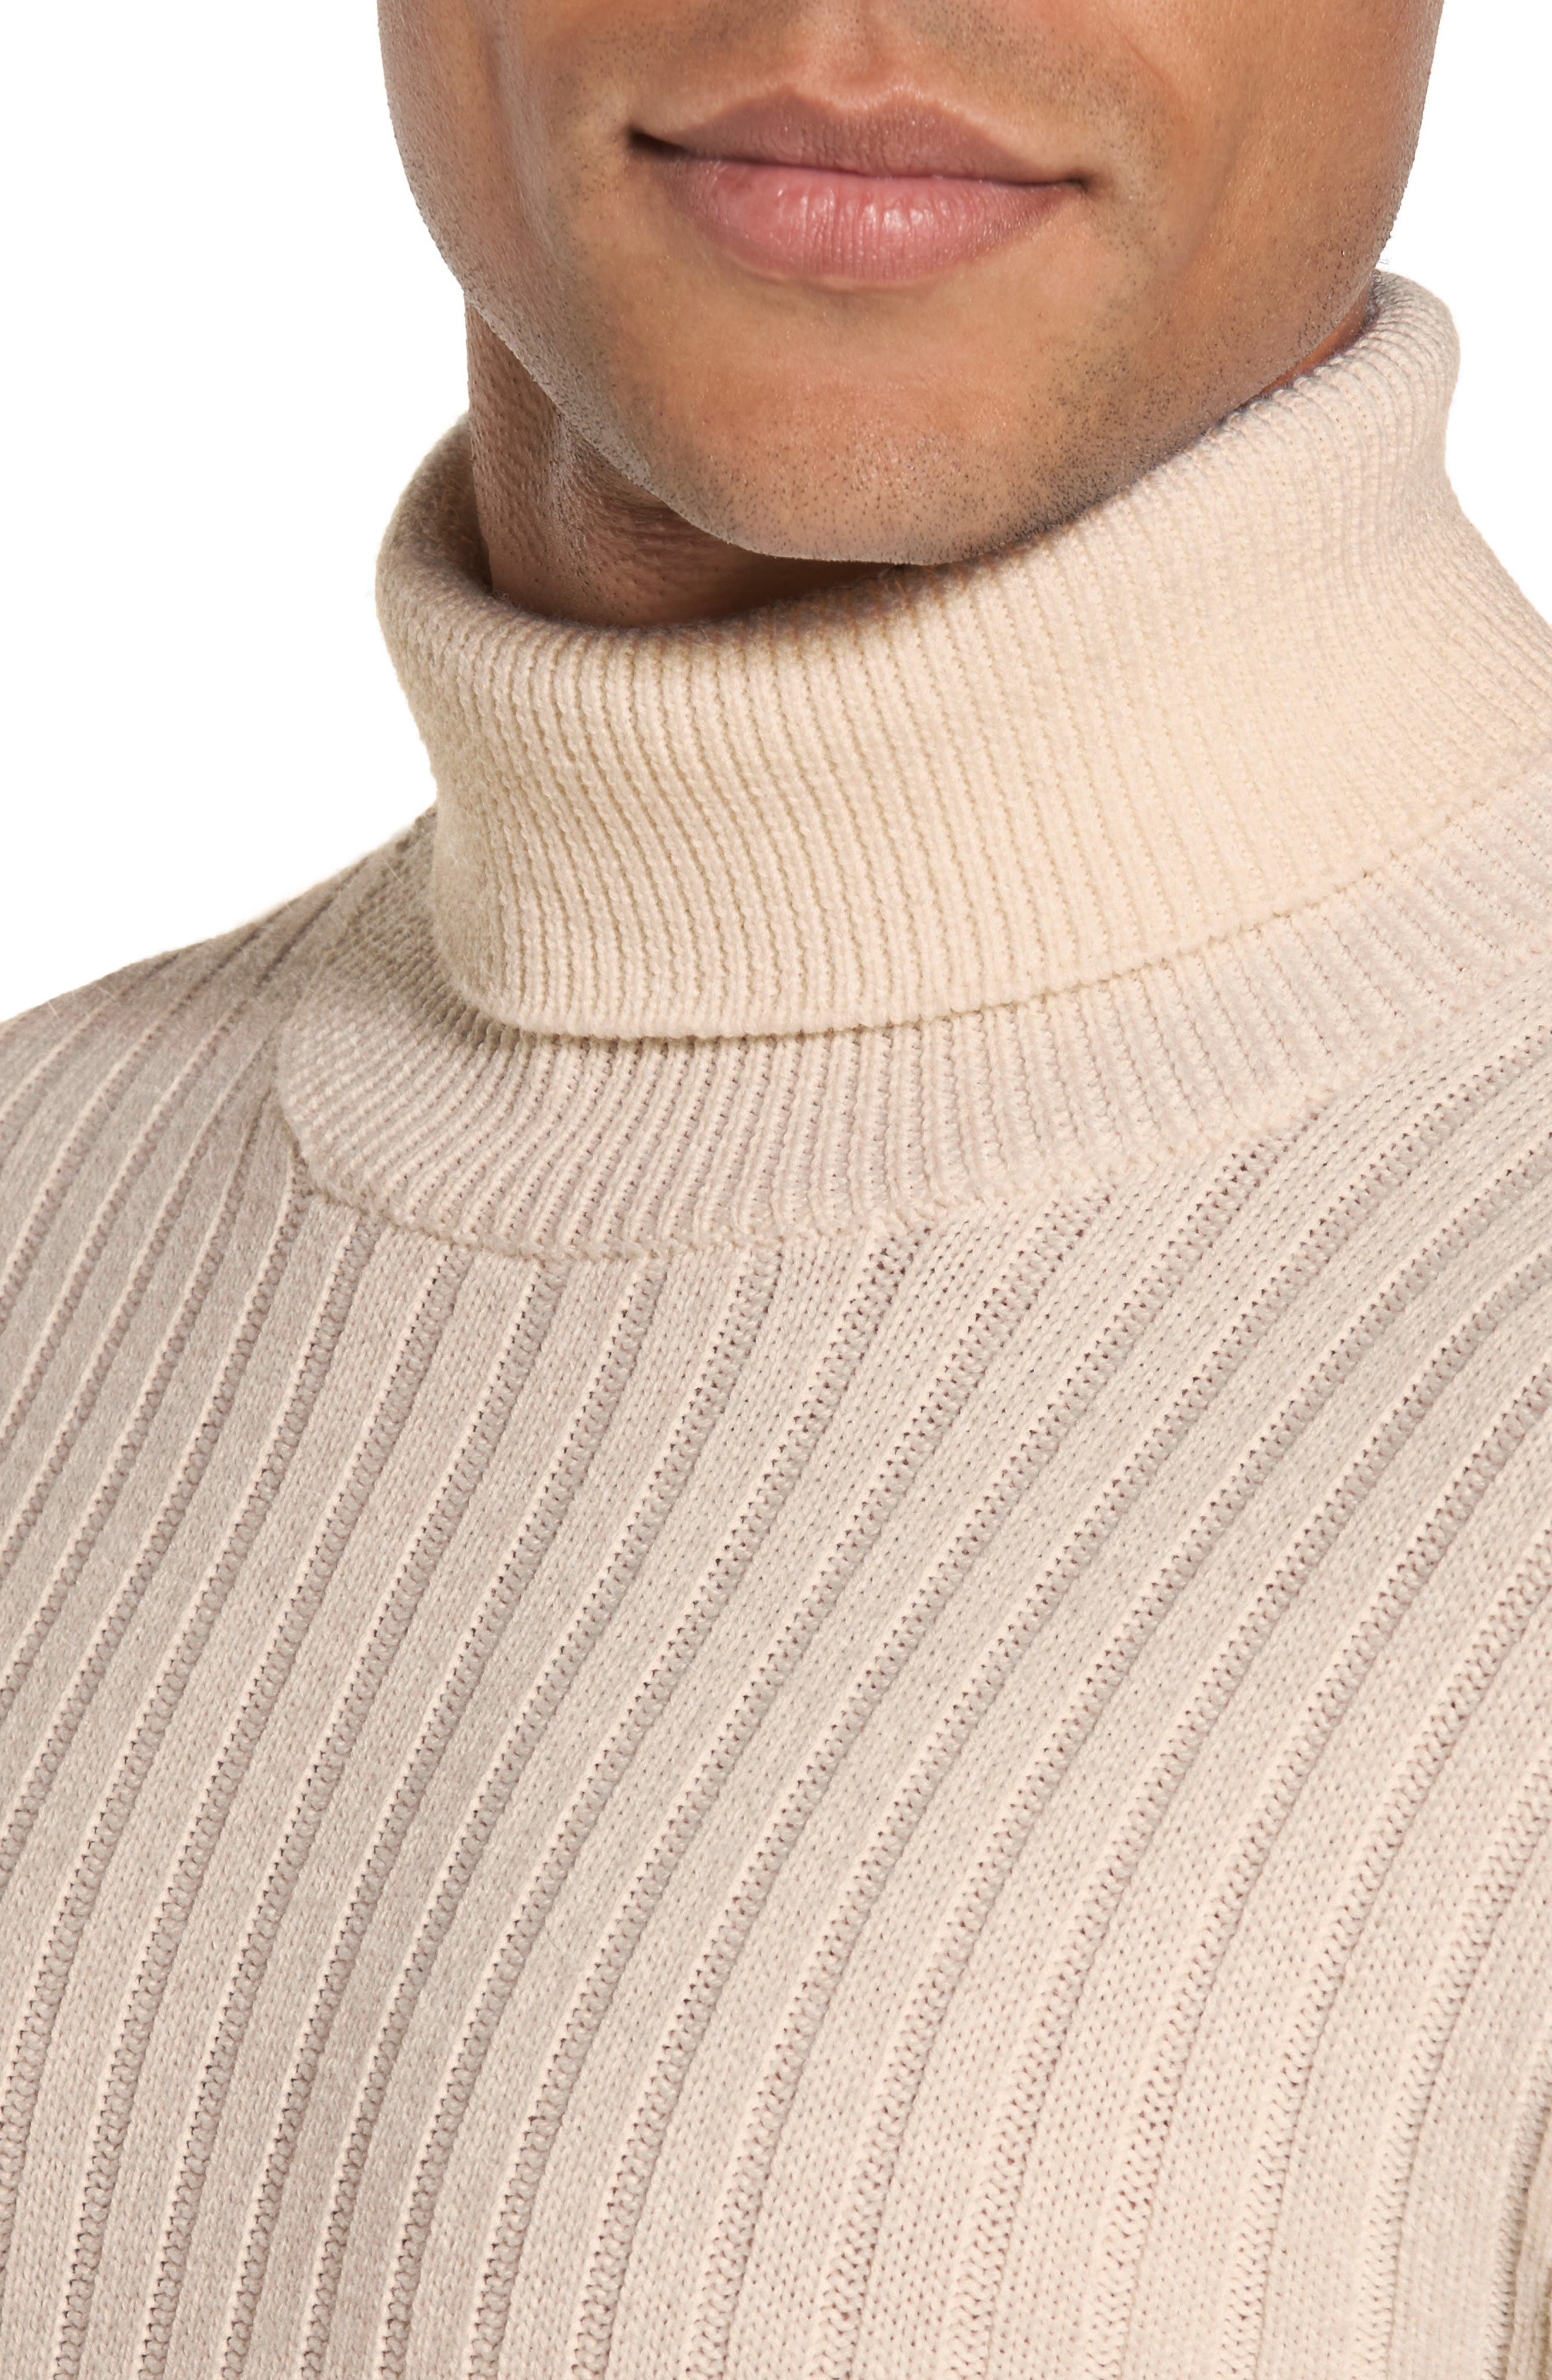 Ribbed Turtleneck Wool Sweater,                             Alternate thumbnail 4, color,                             250